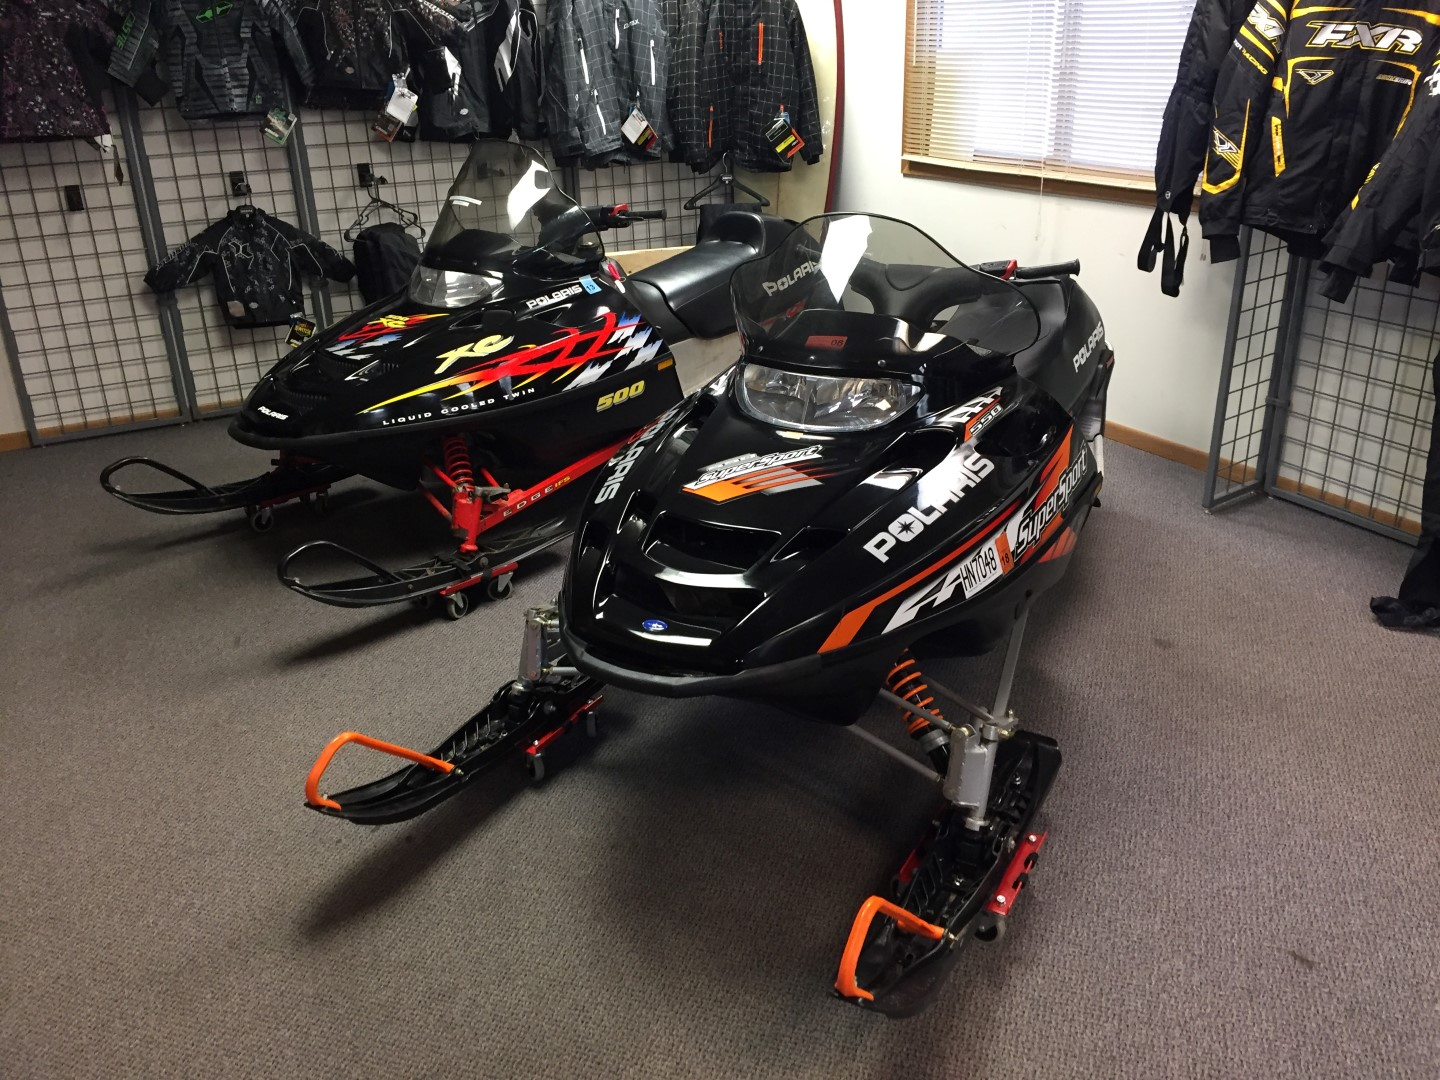 2005 polaris supersport 550 Deluxe track for sale seaberg motorsports crosslake MN quarter view st cloud minneapolis